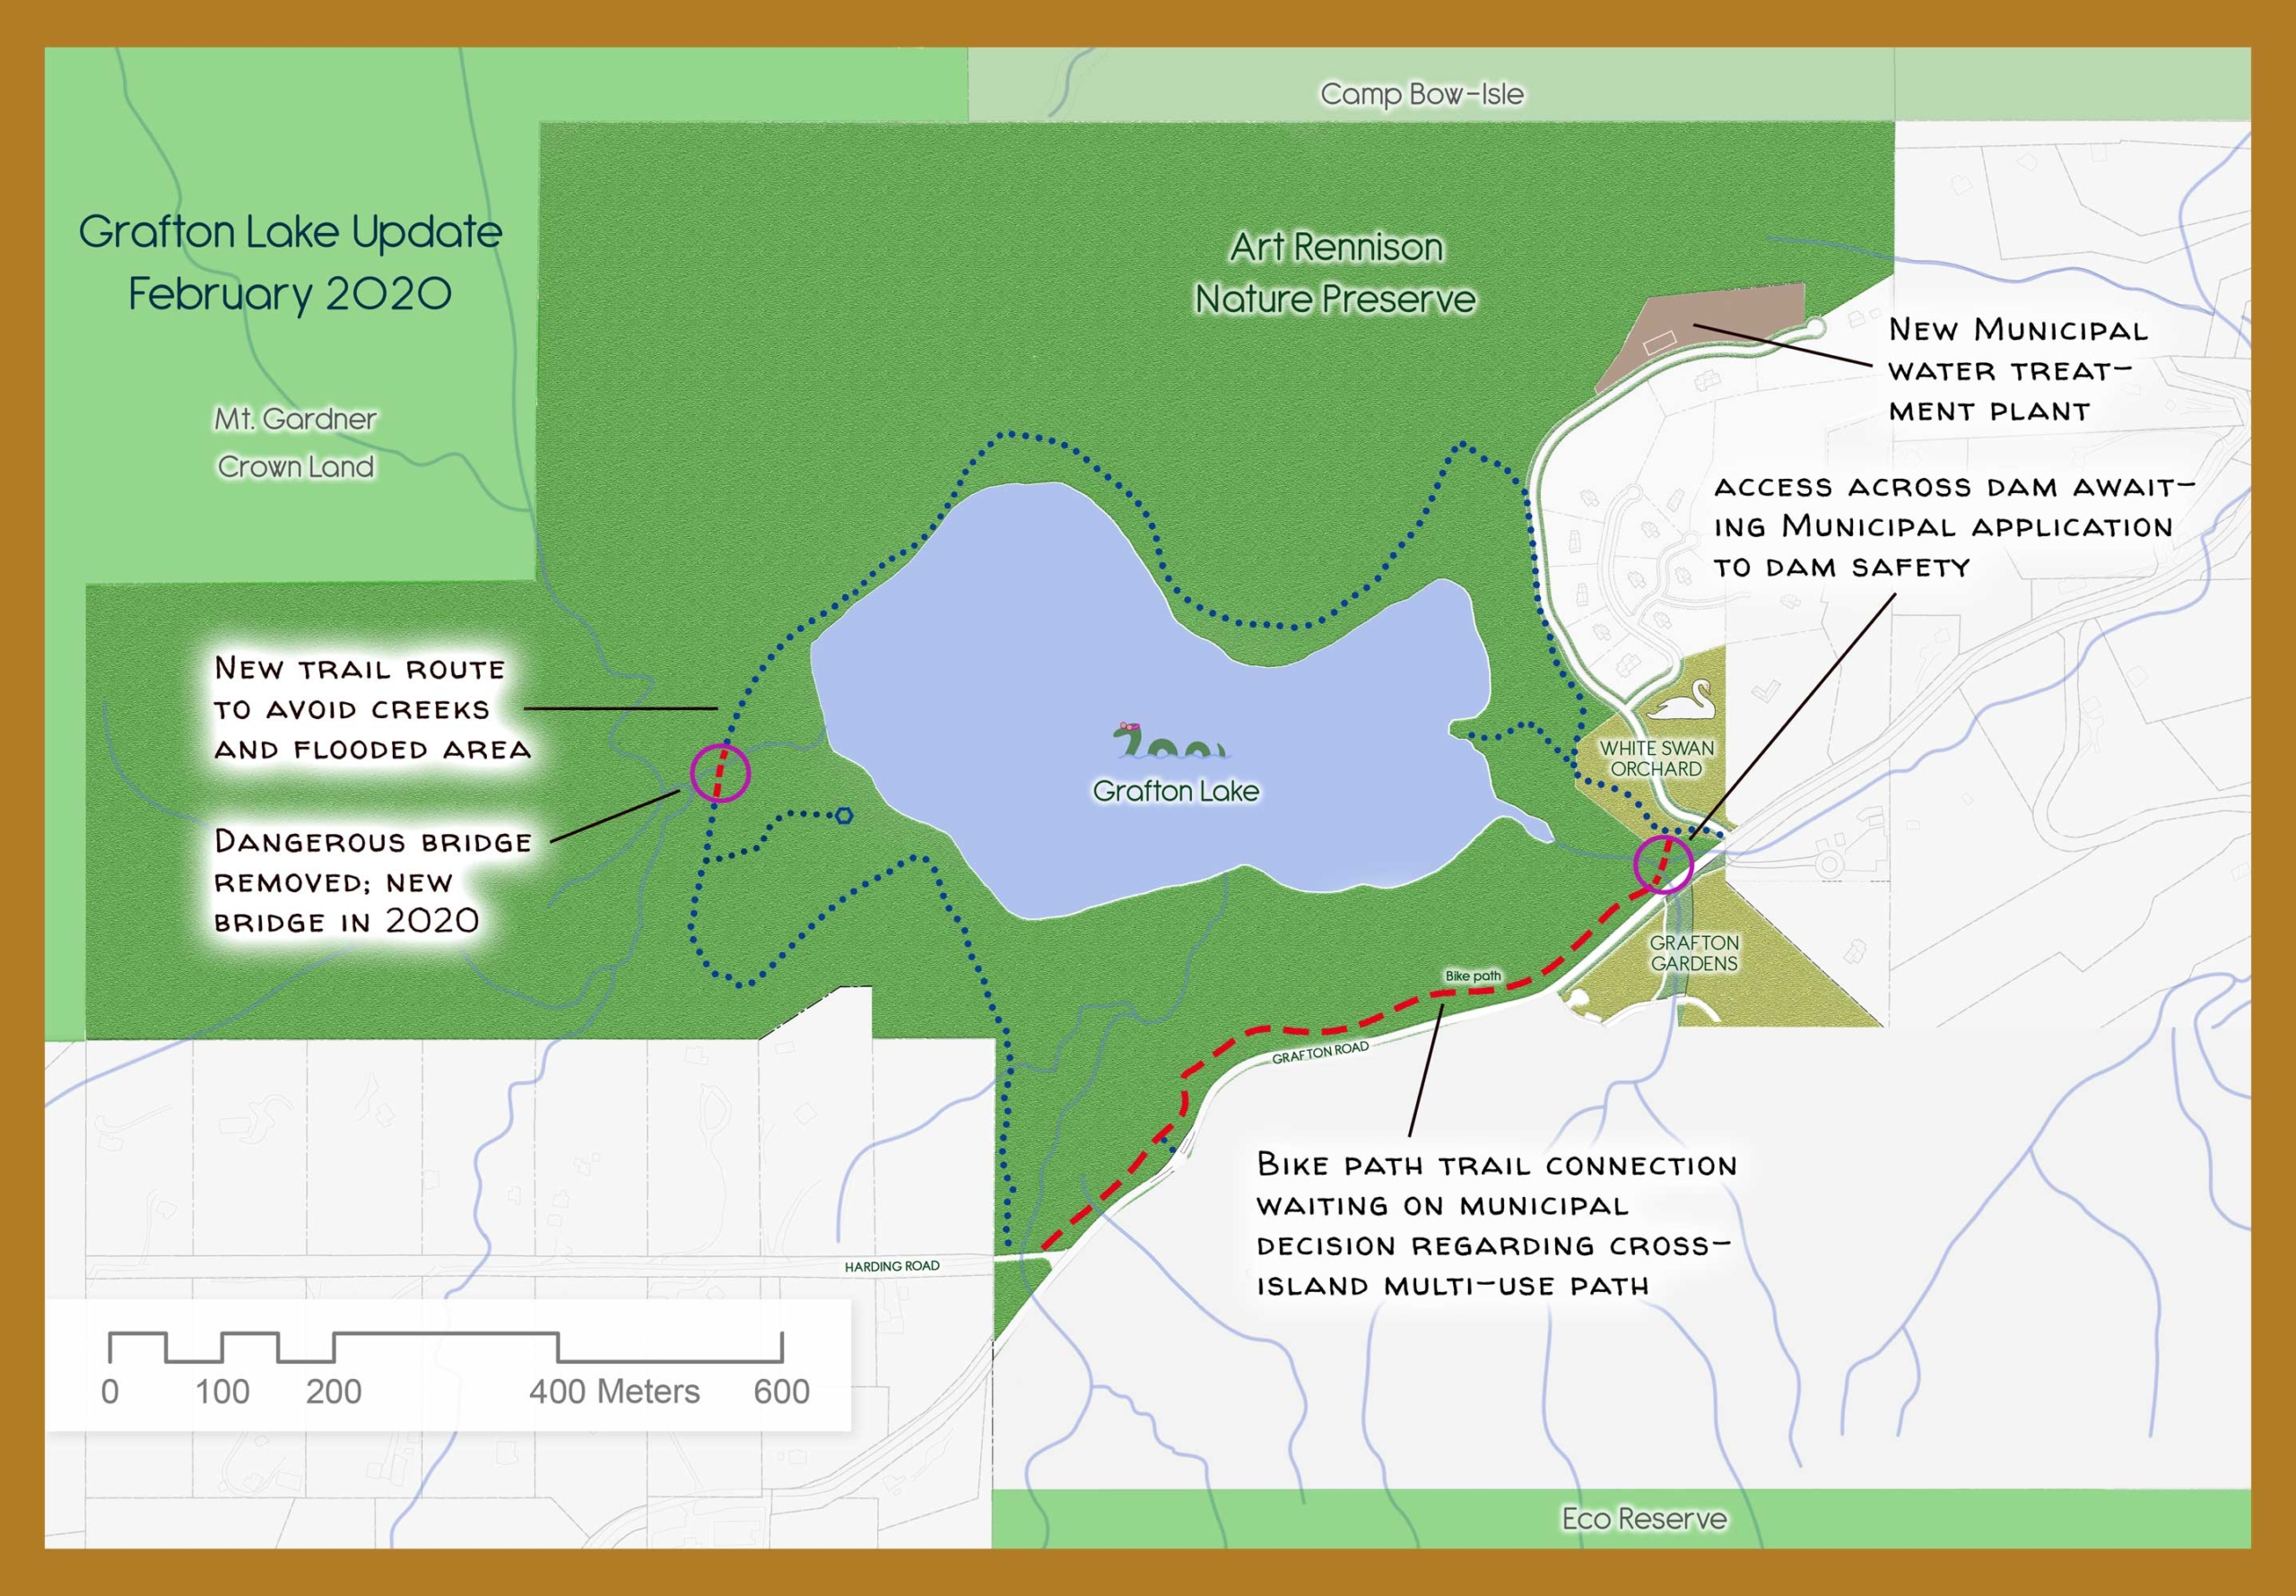 Map shows Grafton Lake area, including trail route around the lake. Two obstructions are shown: a missing bridge and a dam without an access route yet. Both will be linked in future. Also, a route along the road is shown in red as it has not yet been constructed.